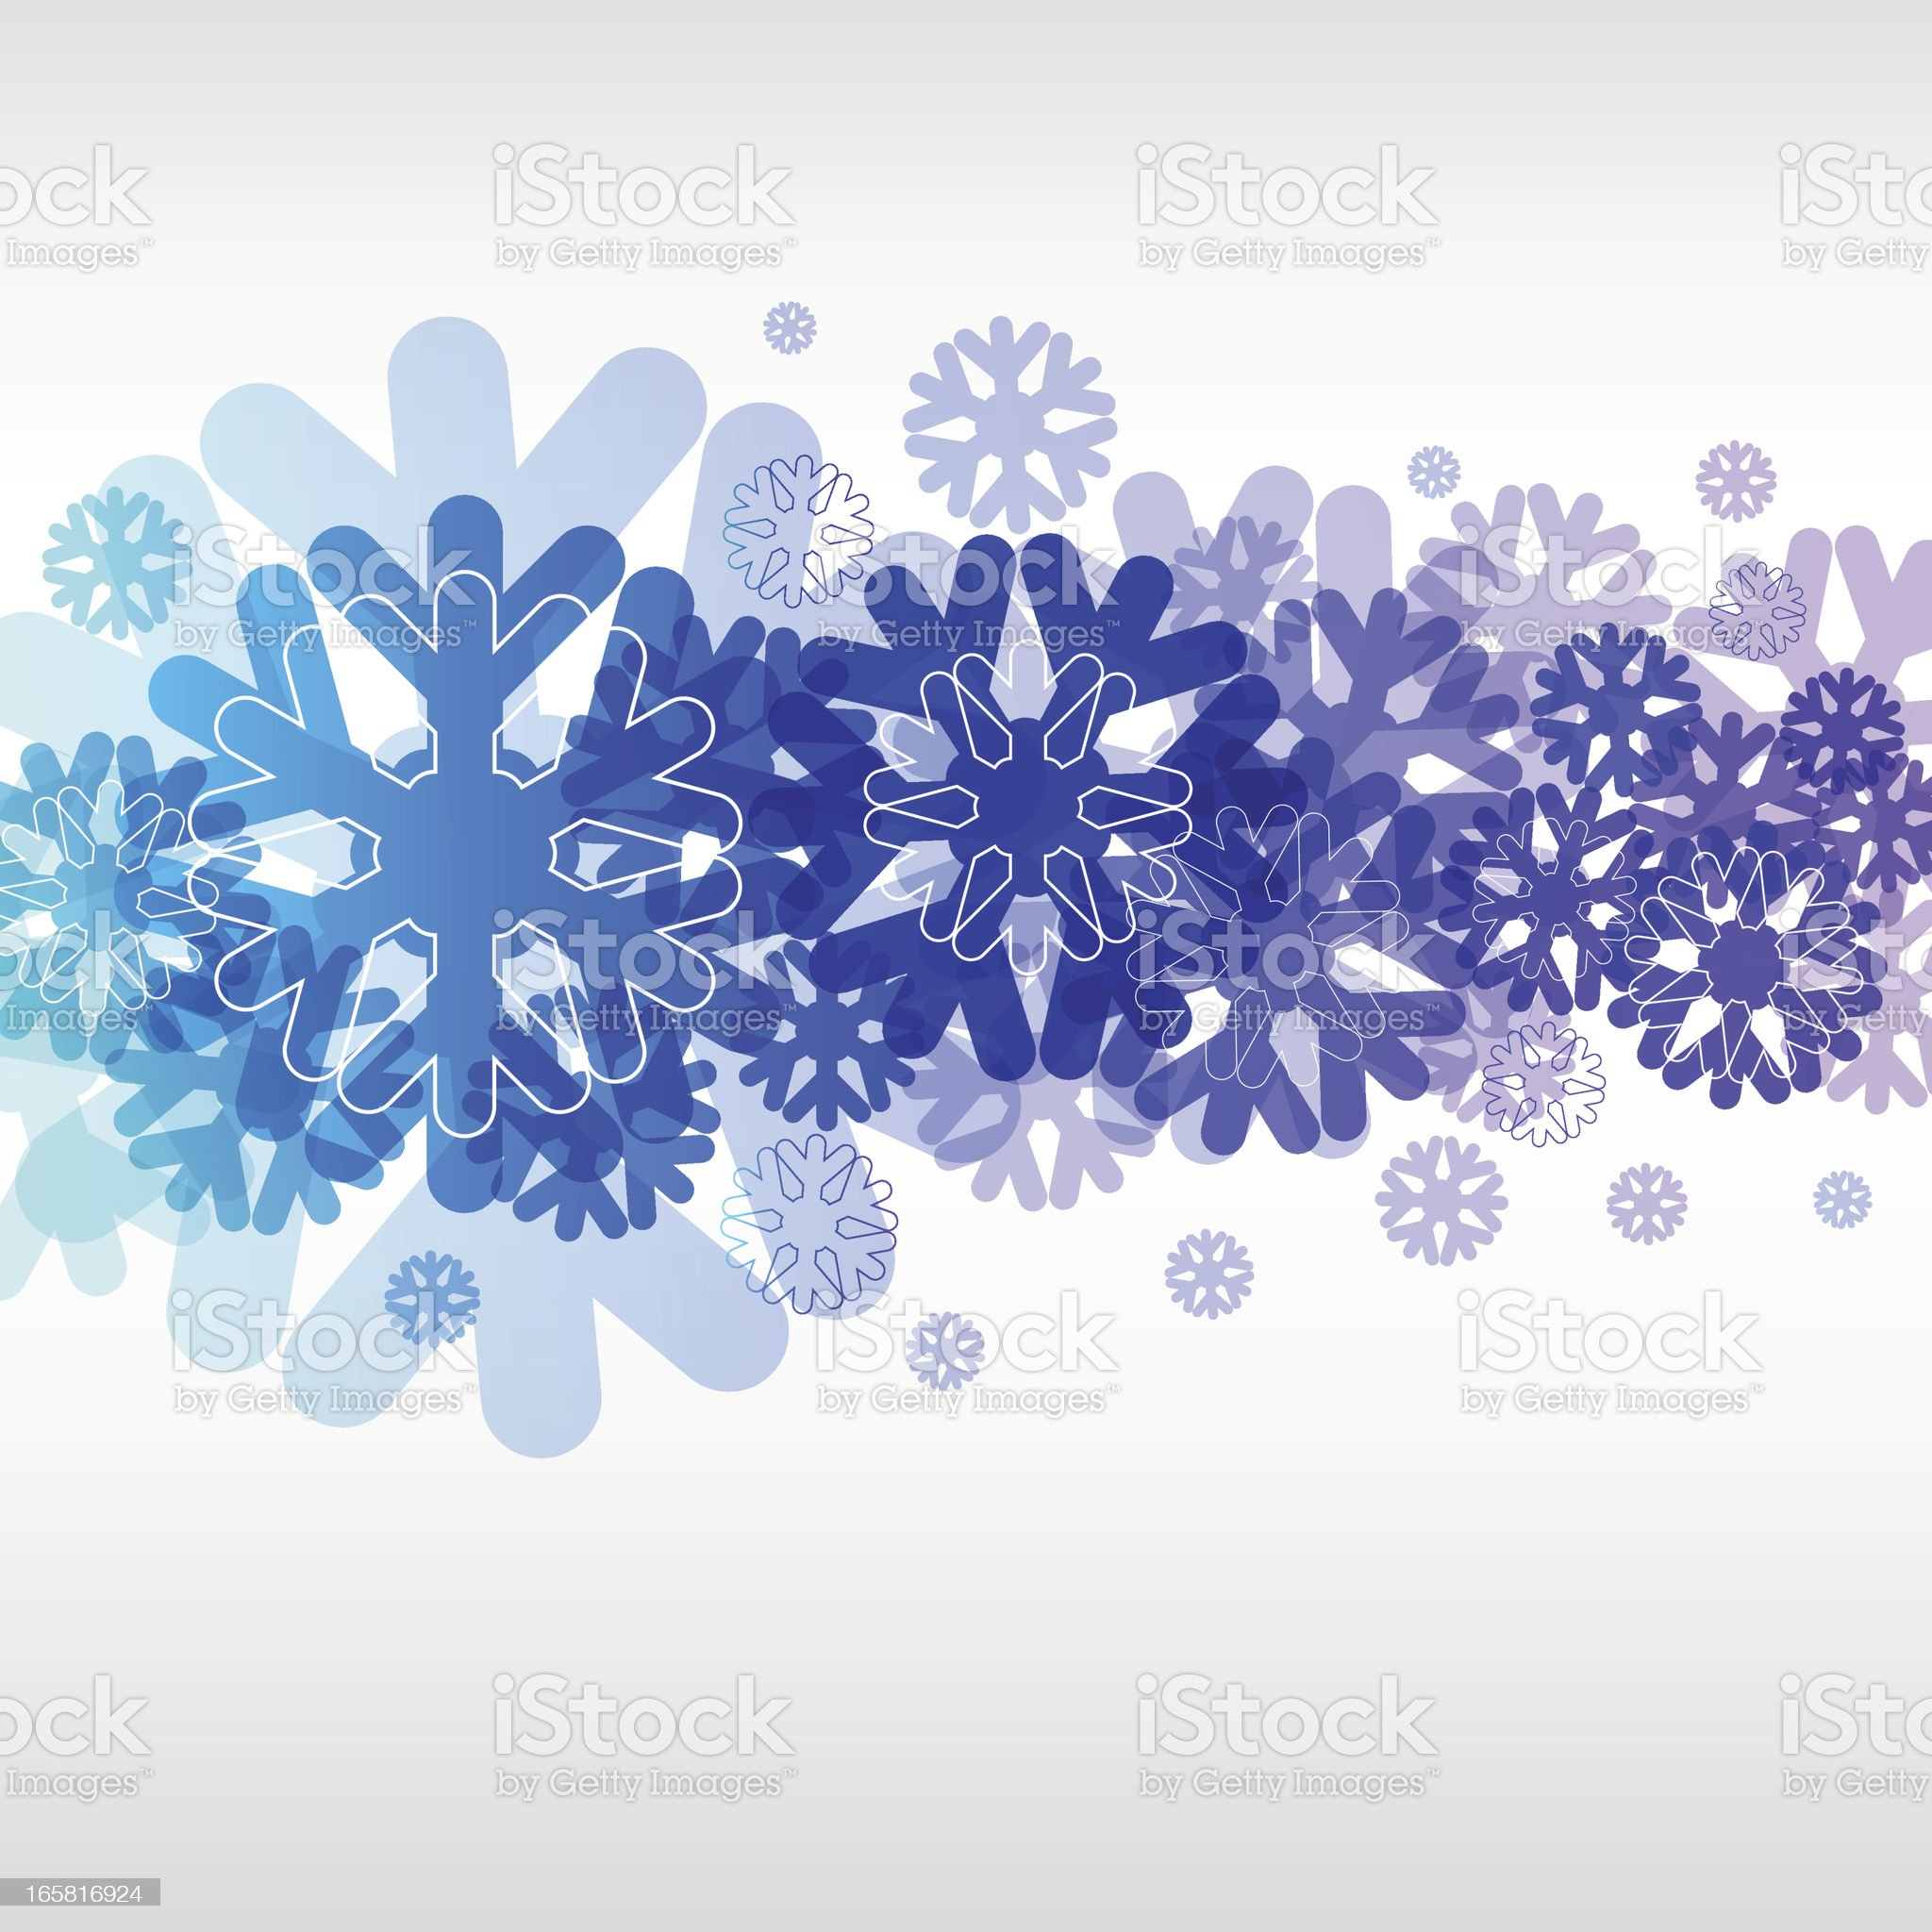 Snowflakes royalty-free stock vector art